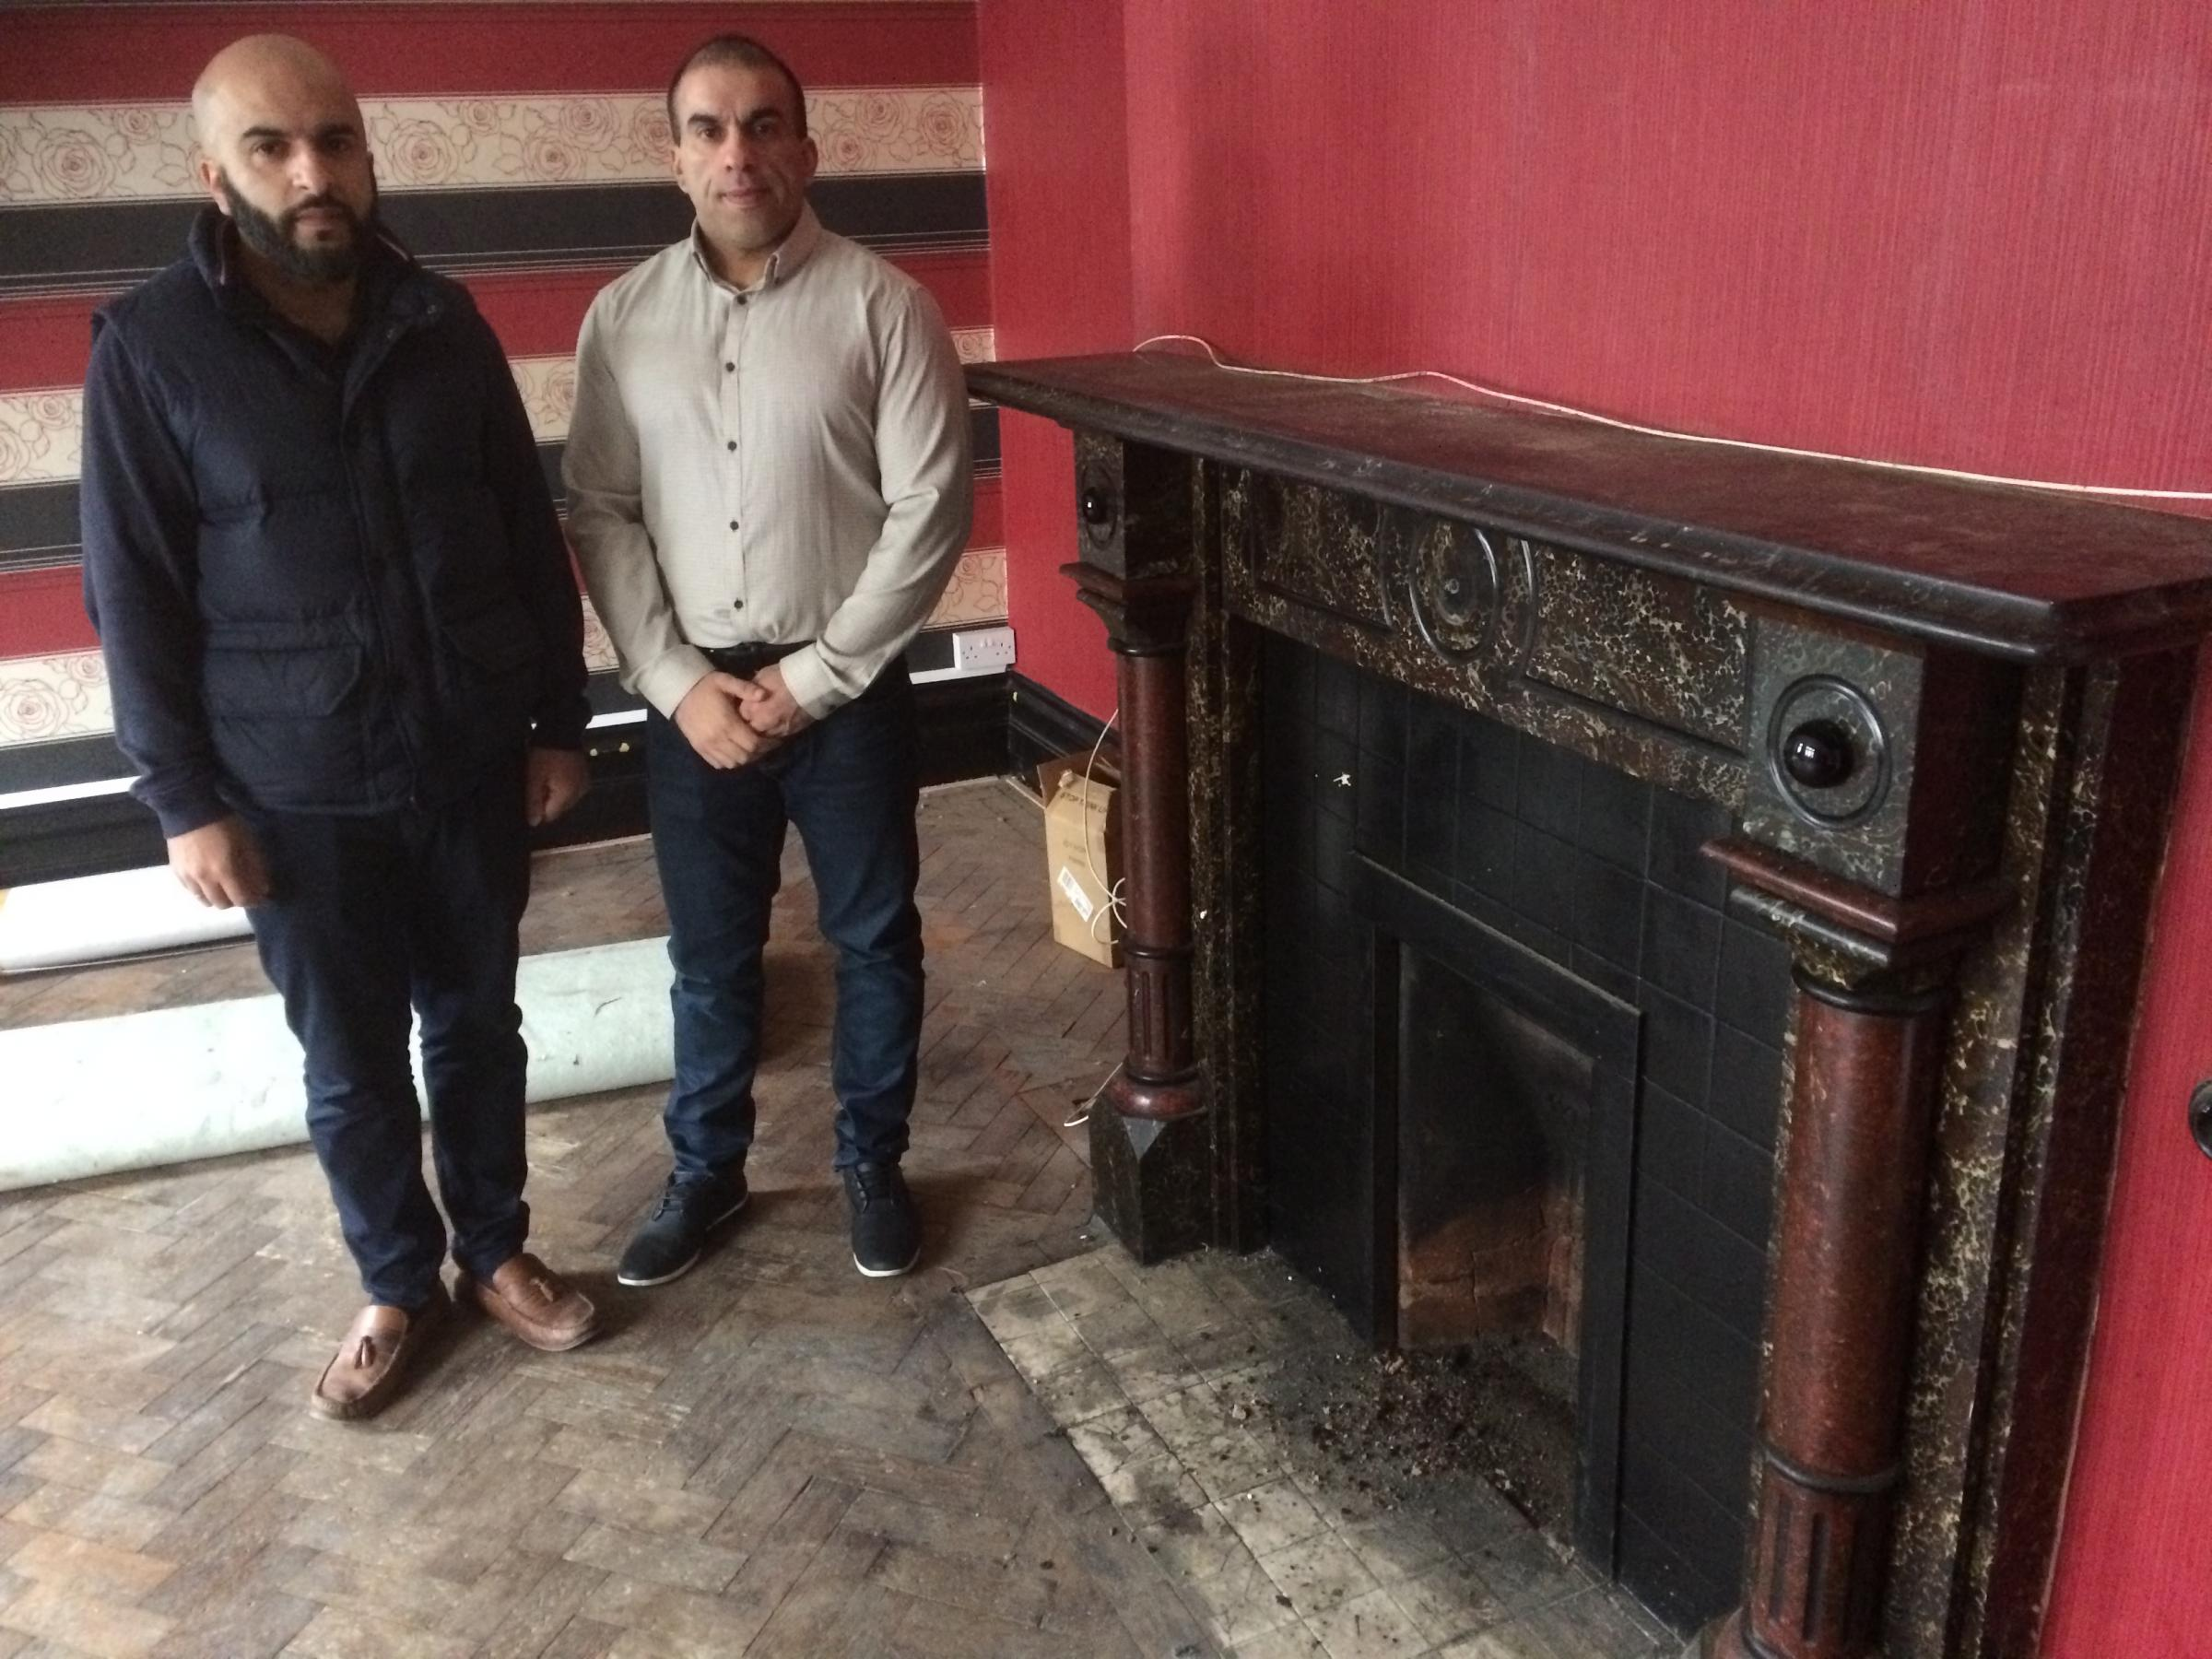 From left, Taliq and Mudassar Hussain next to one of the fireplaces in the old Star Pub building